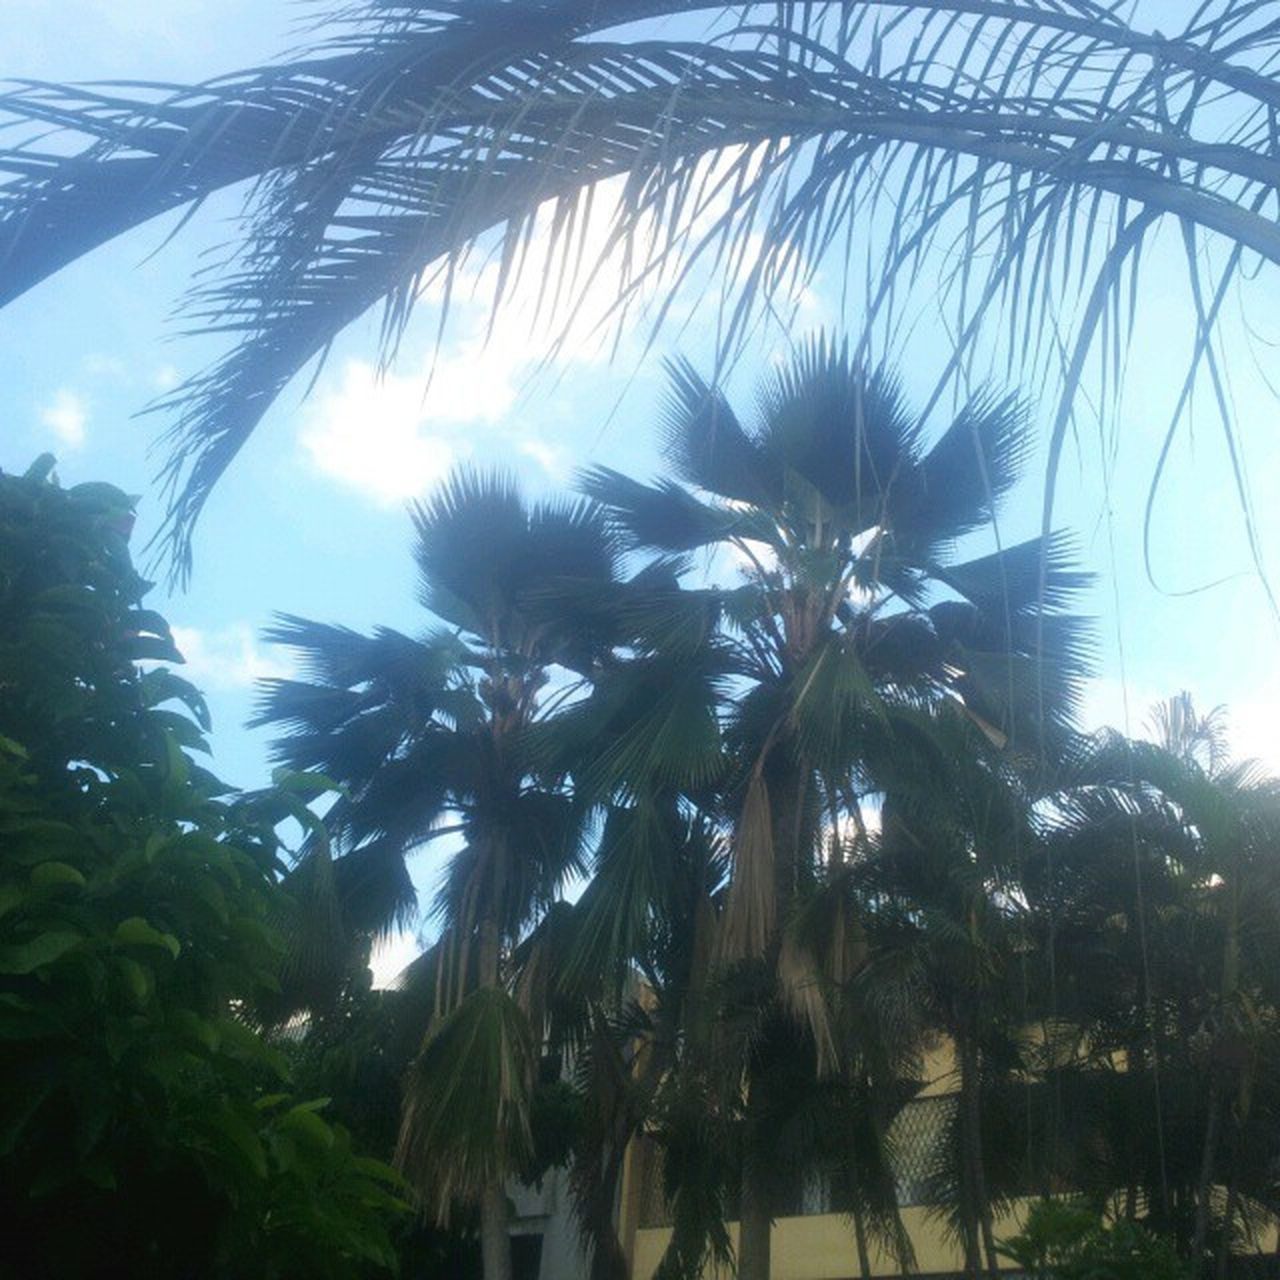 nature, palm tree, growth, low angle view, tree, no people, beauty in nature, day, outdoors, plant, sky, close-up